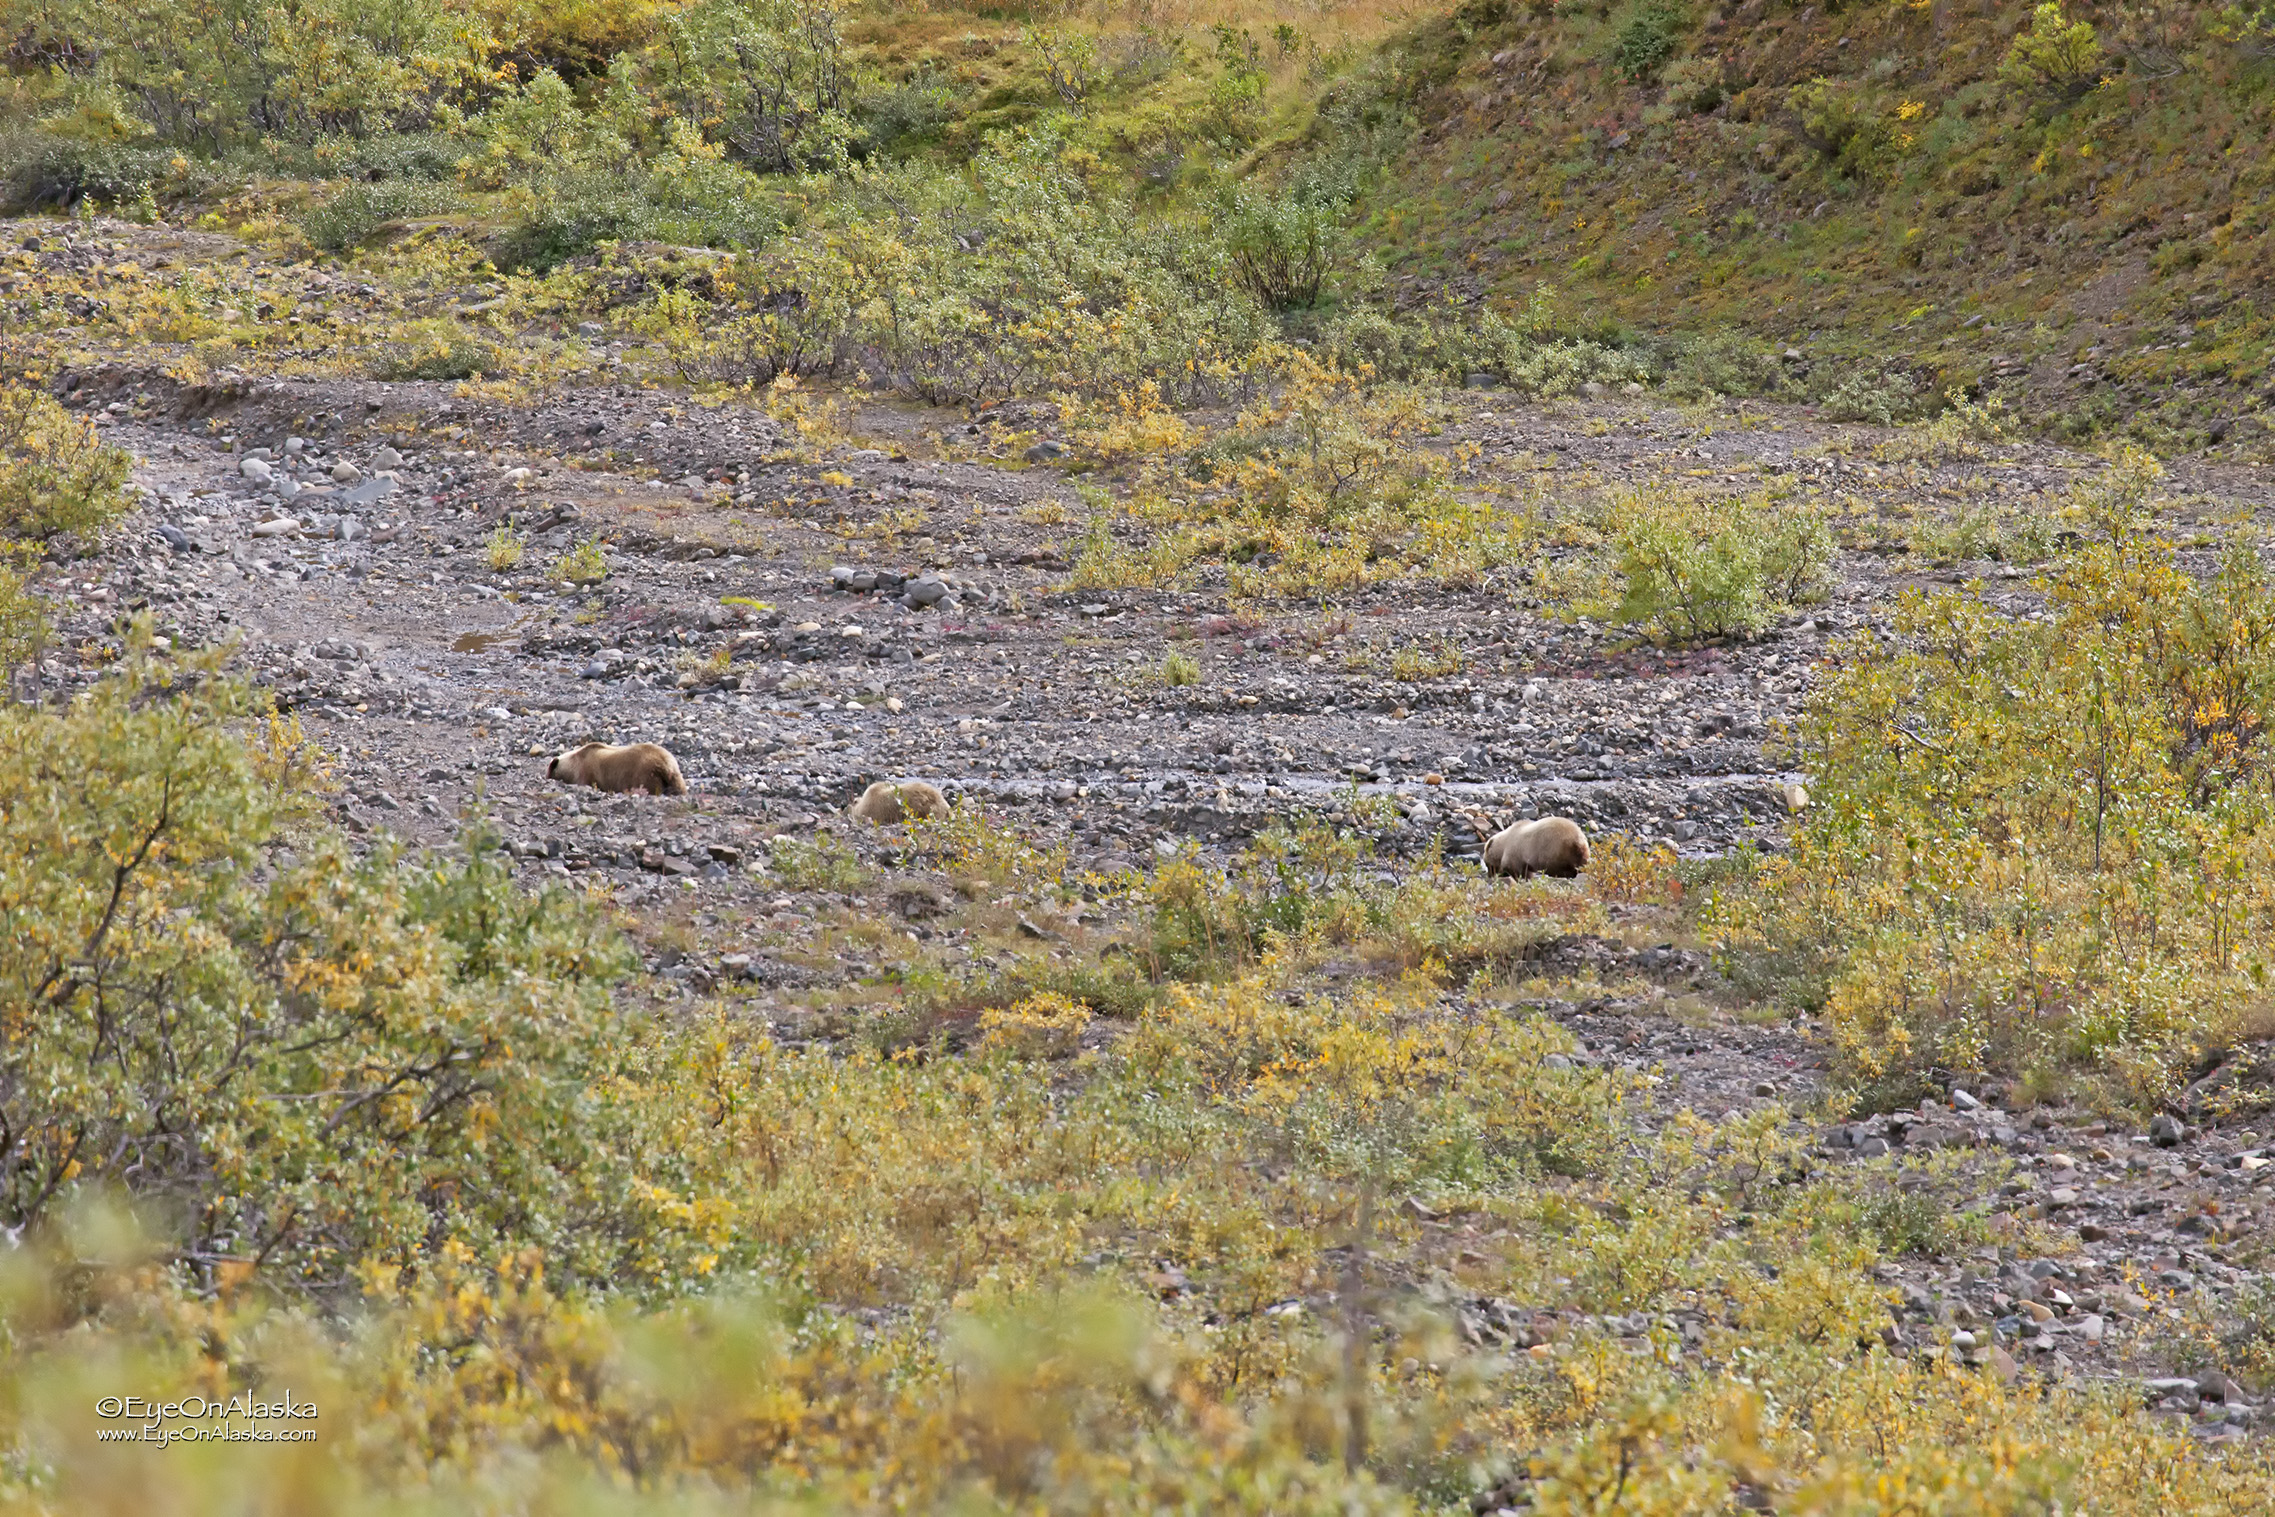 yep, three more bears.  It turns out that one of the cubs has an injured paw.  The Rangers are keeping an eye on it.  It seemed to be moving okay, so if it makes it to den-up for the winter, it should be okay.